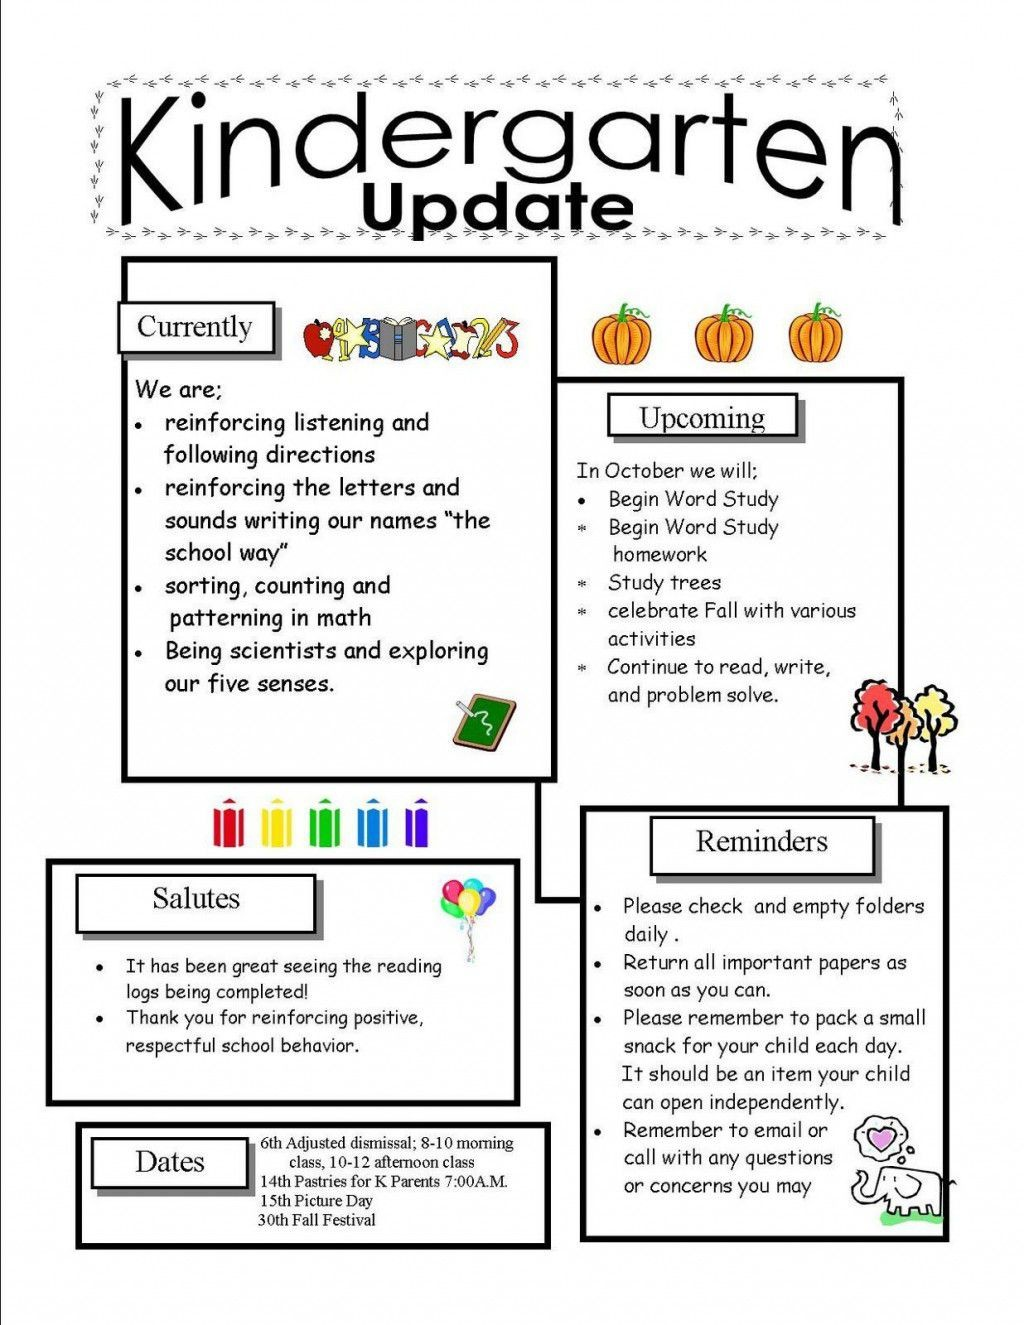 002 Phenomenal School Newsletter Template Word Highest Quality  Free Classroom For MicrosoftLarge